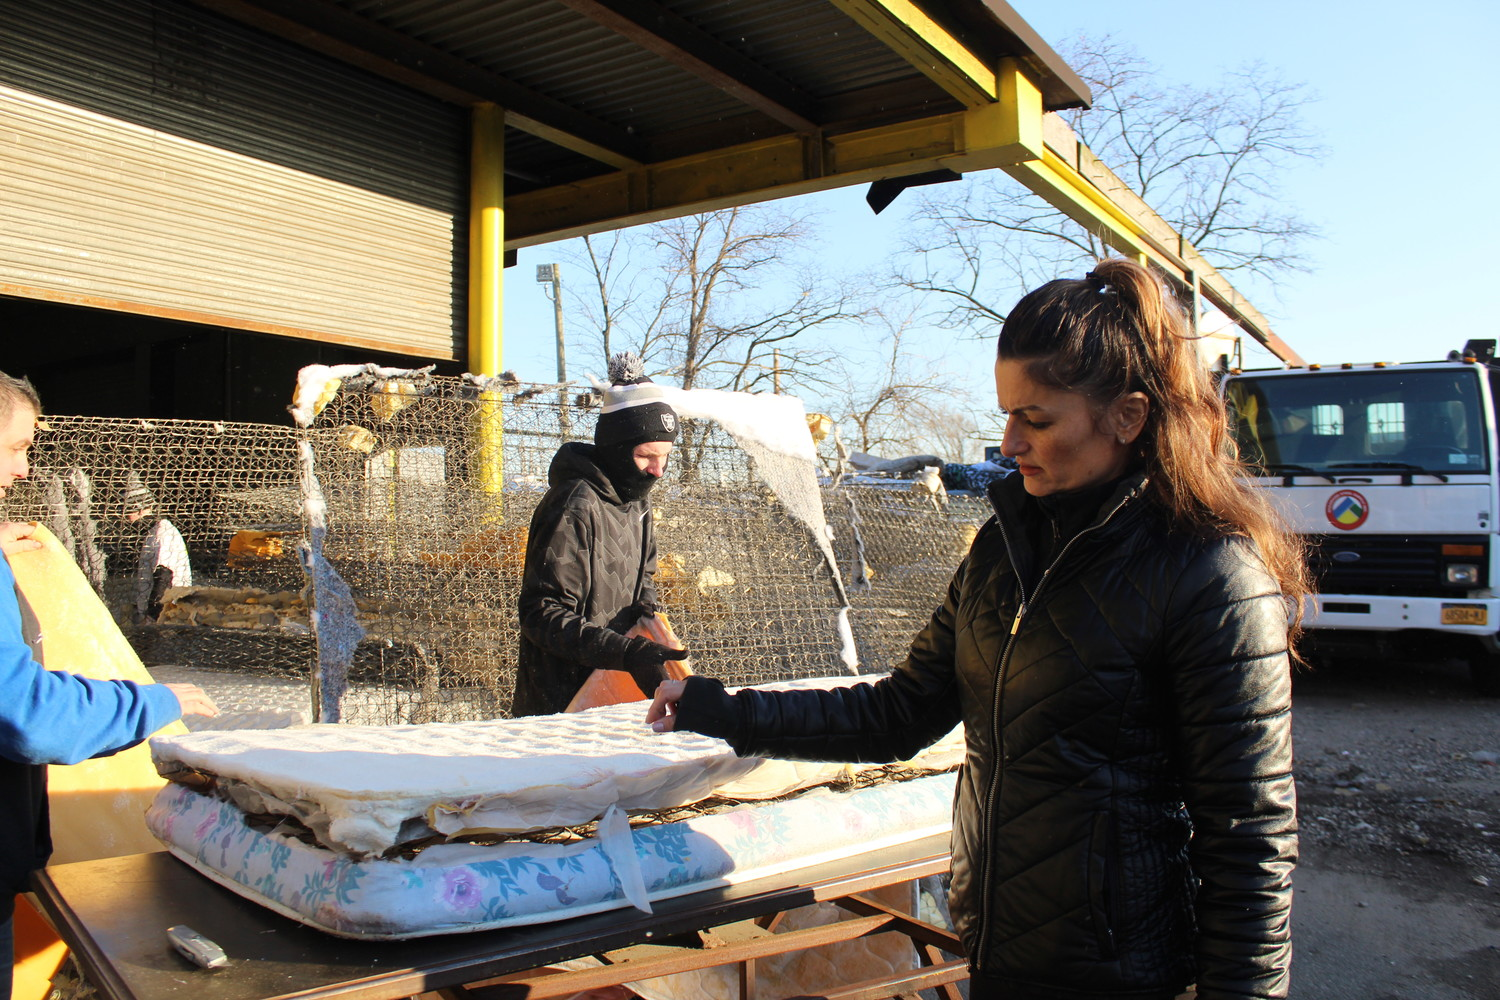 mattress recycling. Christine Kiourtsis, Right, Examined The Parts Of A Twin-sized Mattress While East Recycling R